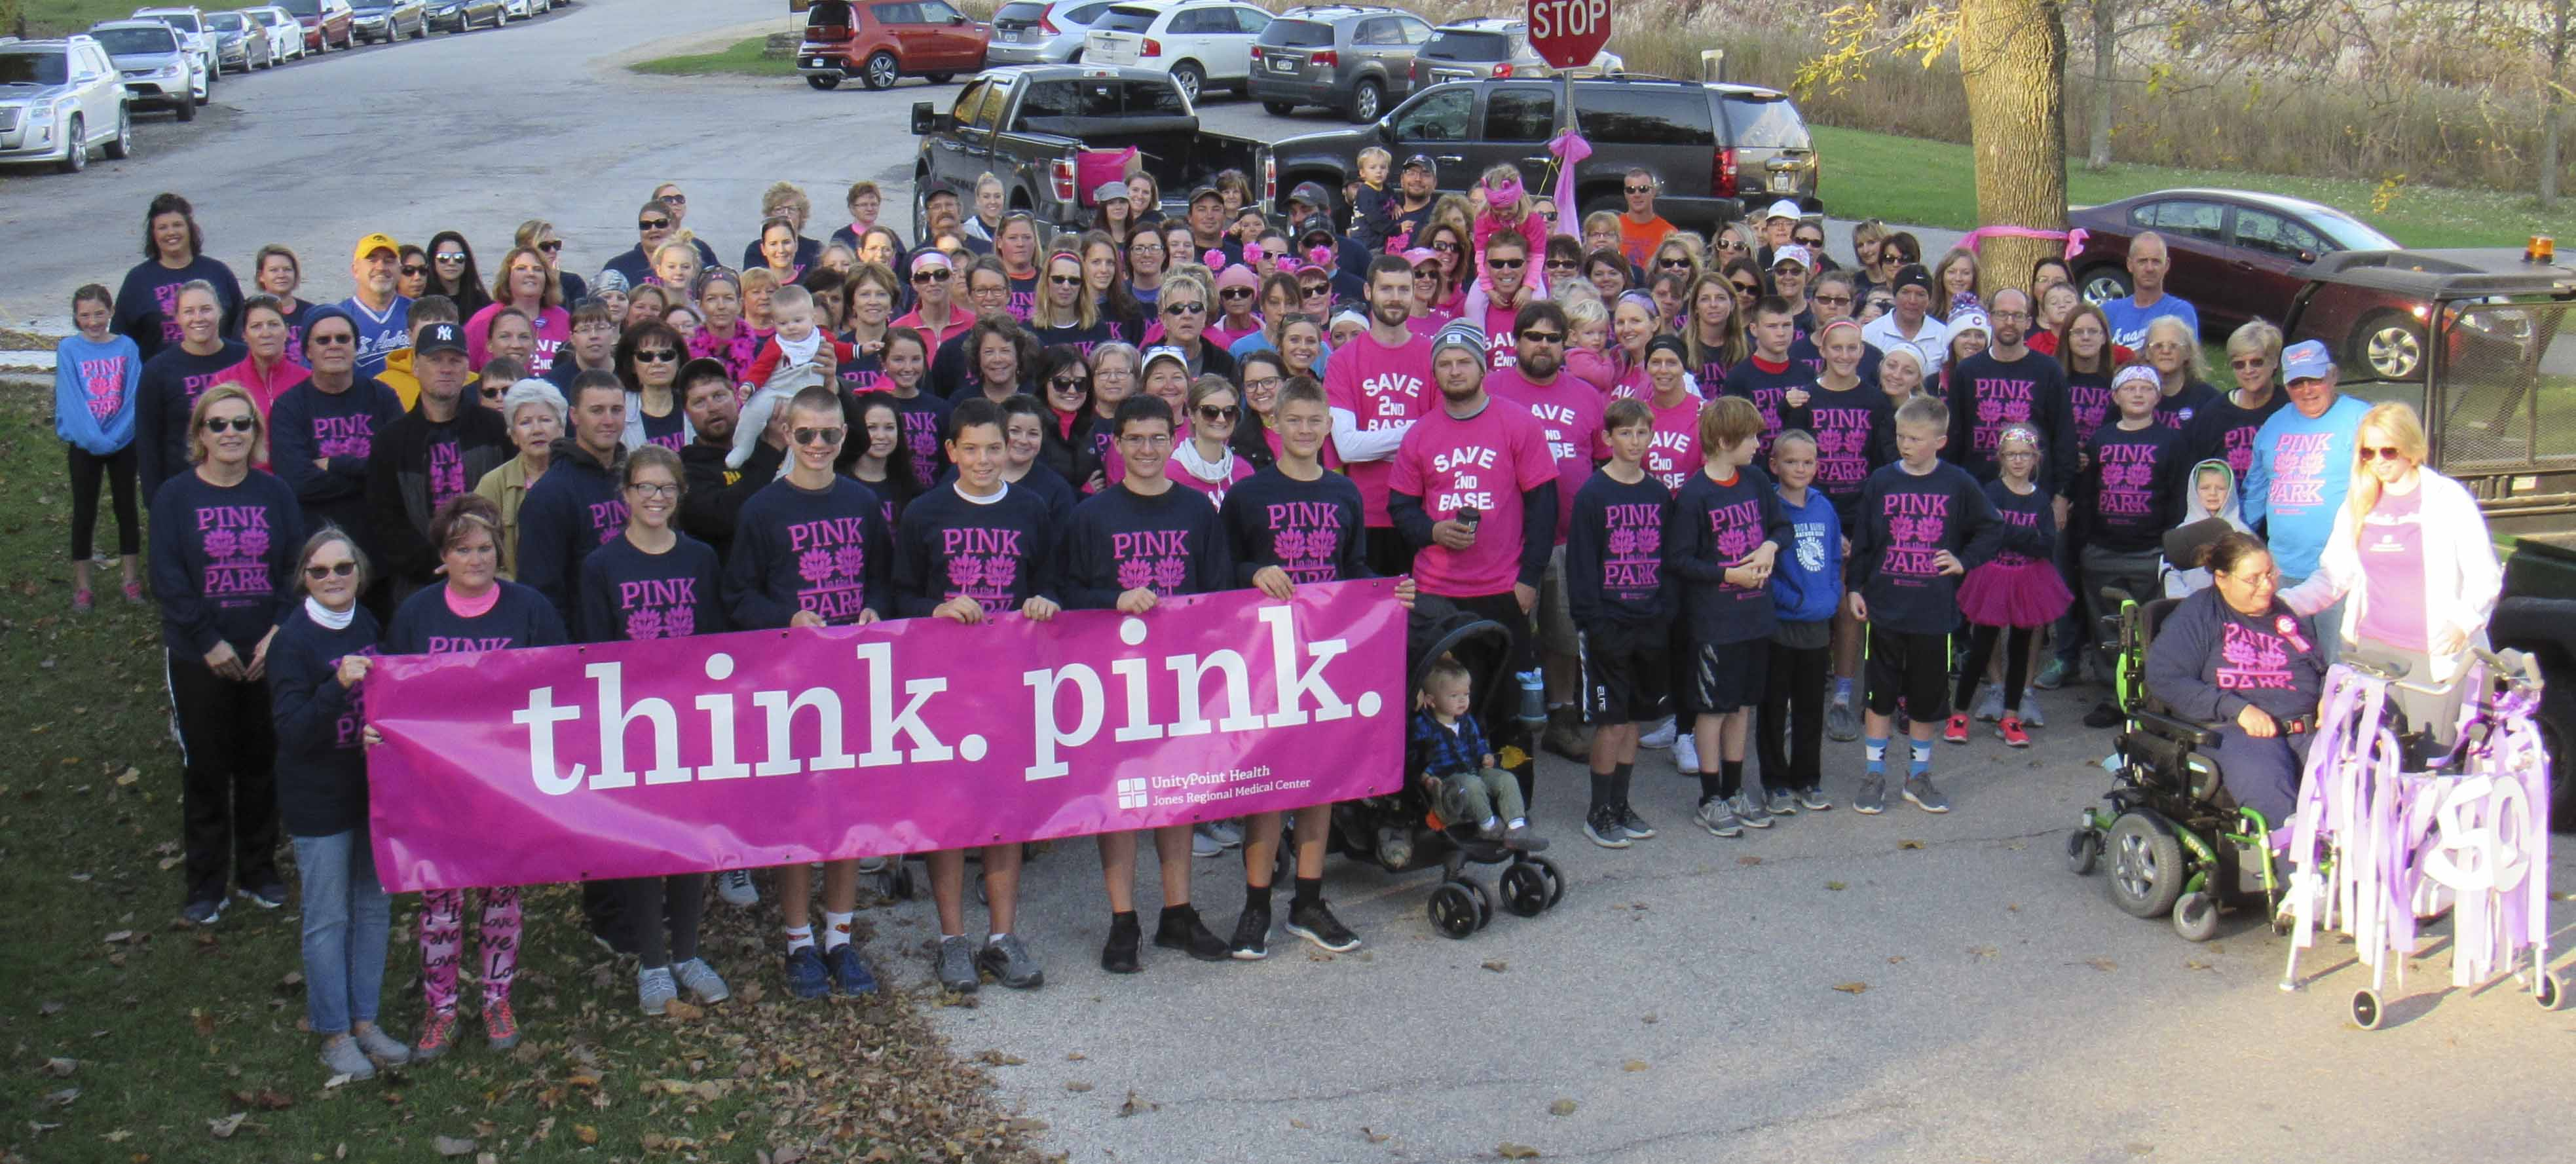 On Oct. 21, Jones Regional Medical Center held its fourth annual Pink in the Park 4K Walk/Run at Wapsipinicon State Park. The event helps to raise money for JRMC's 3-D Mammogram Project. Over 200 people took part in the event for Breast Cancer Awareness Month. (Photo by Kim Brooks)